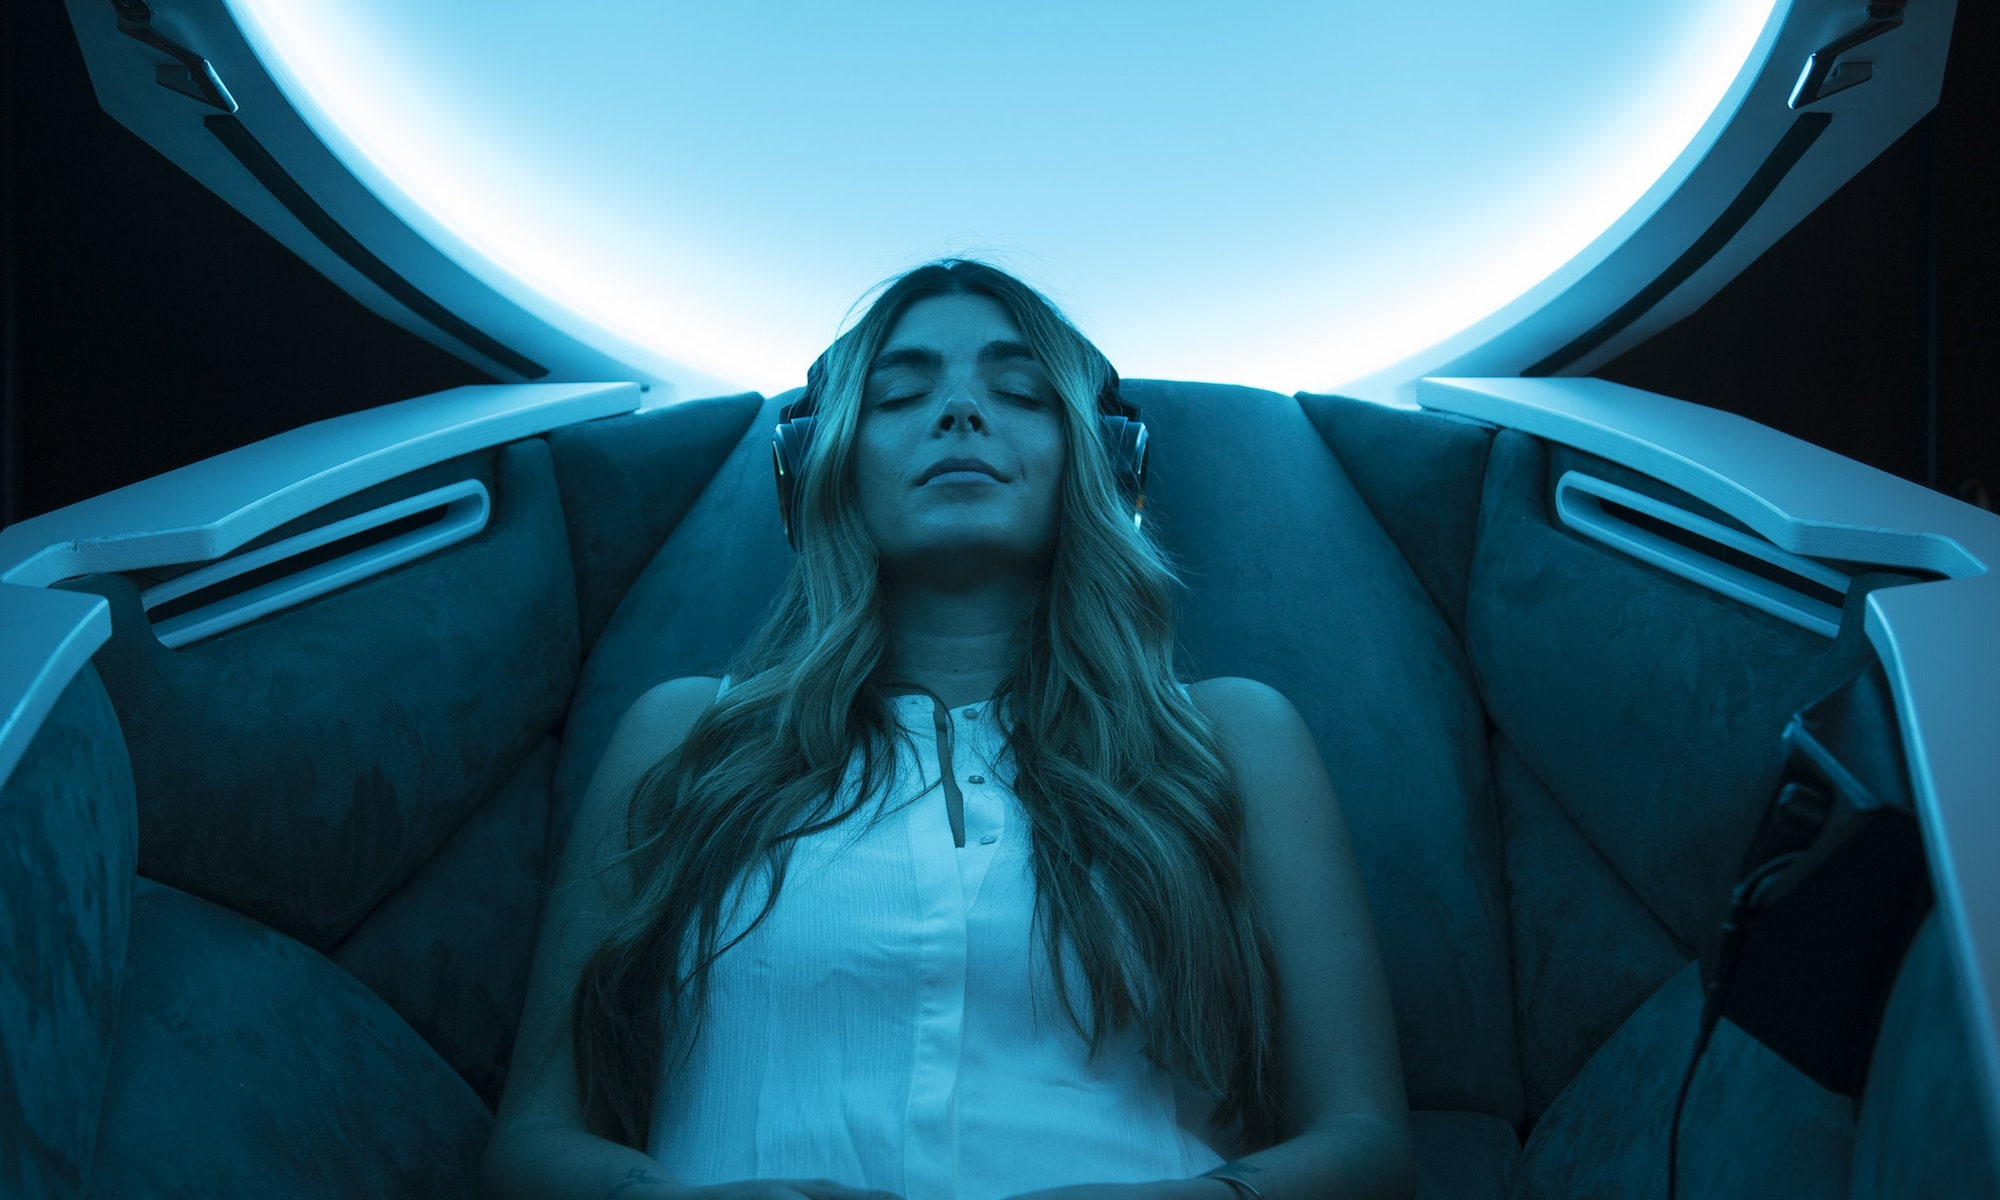 Personal meditation pod for $14,500—Is it worth it?